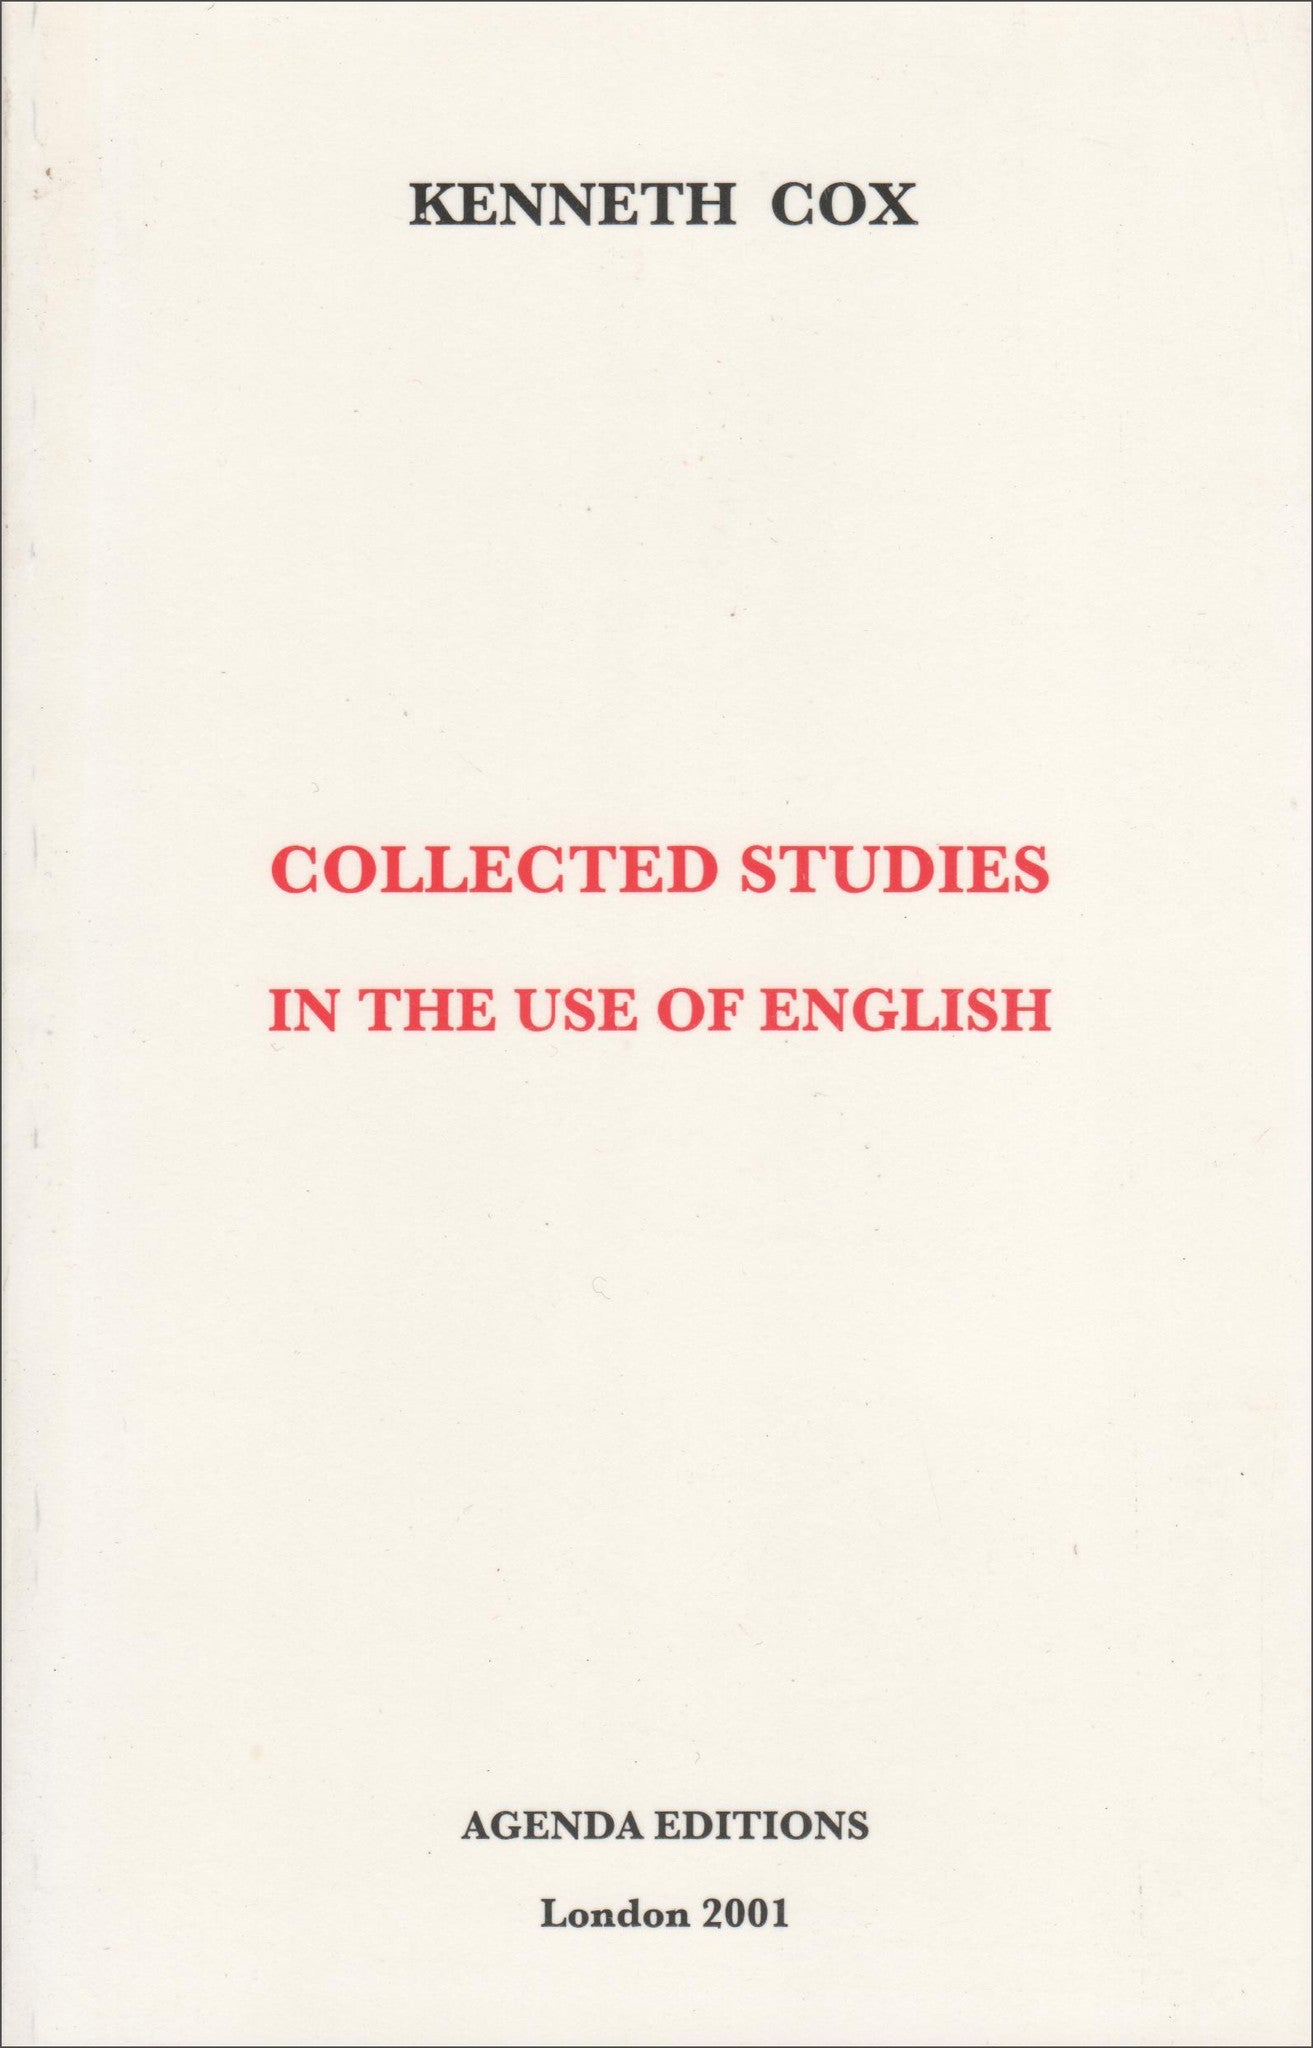 Collected Studies in the Use of English